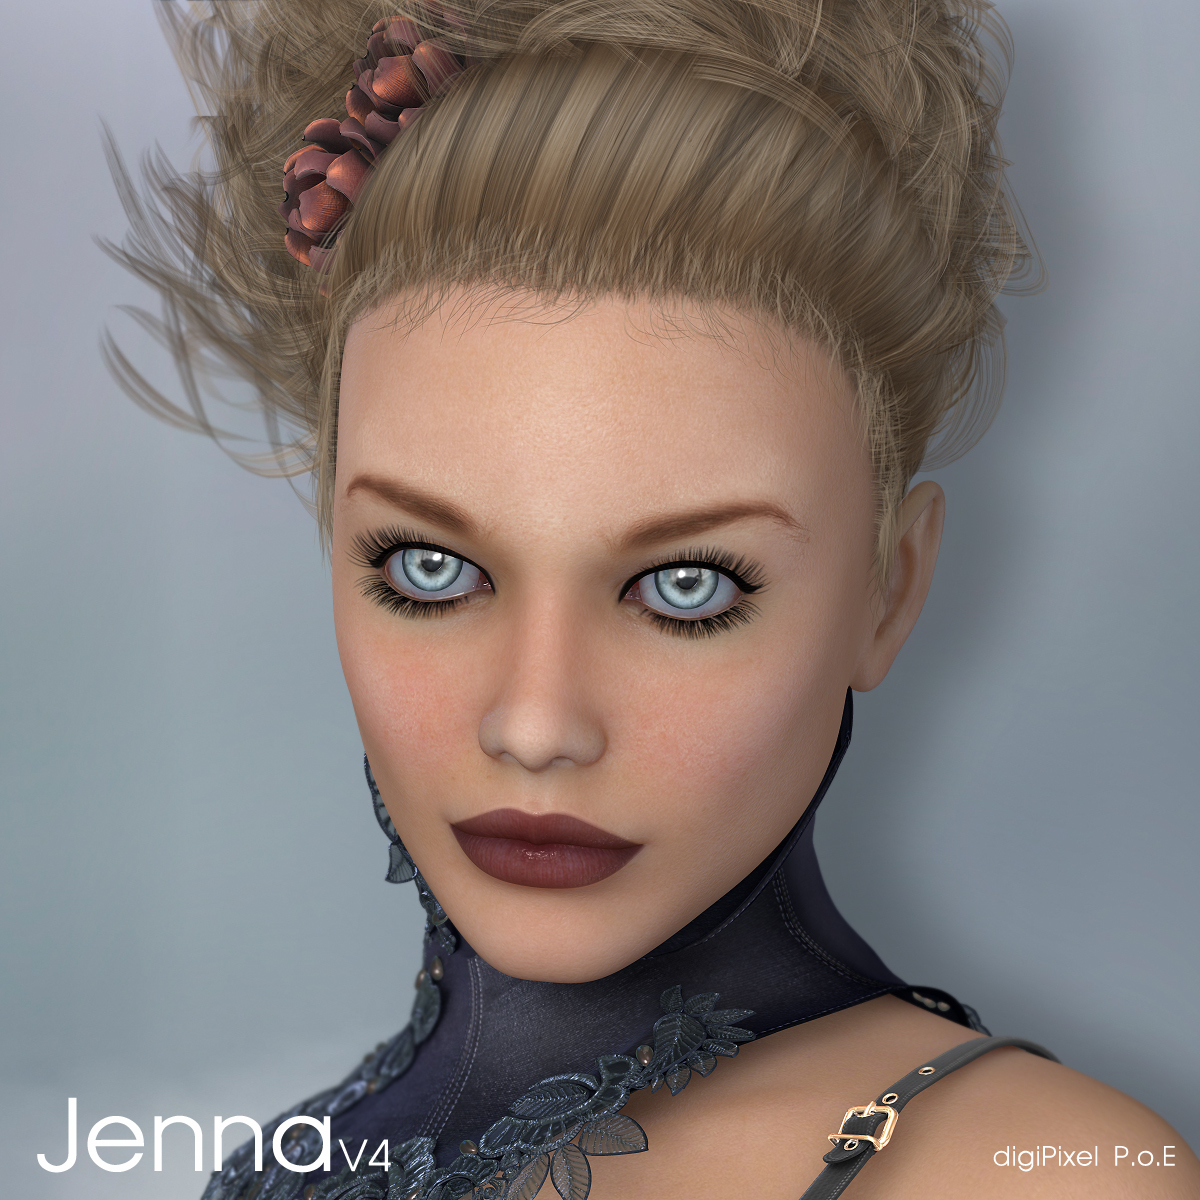 Jenna - V4 Girl by digiPixel